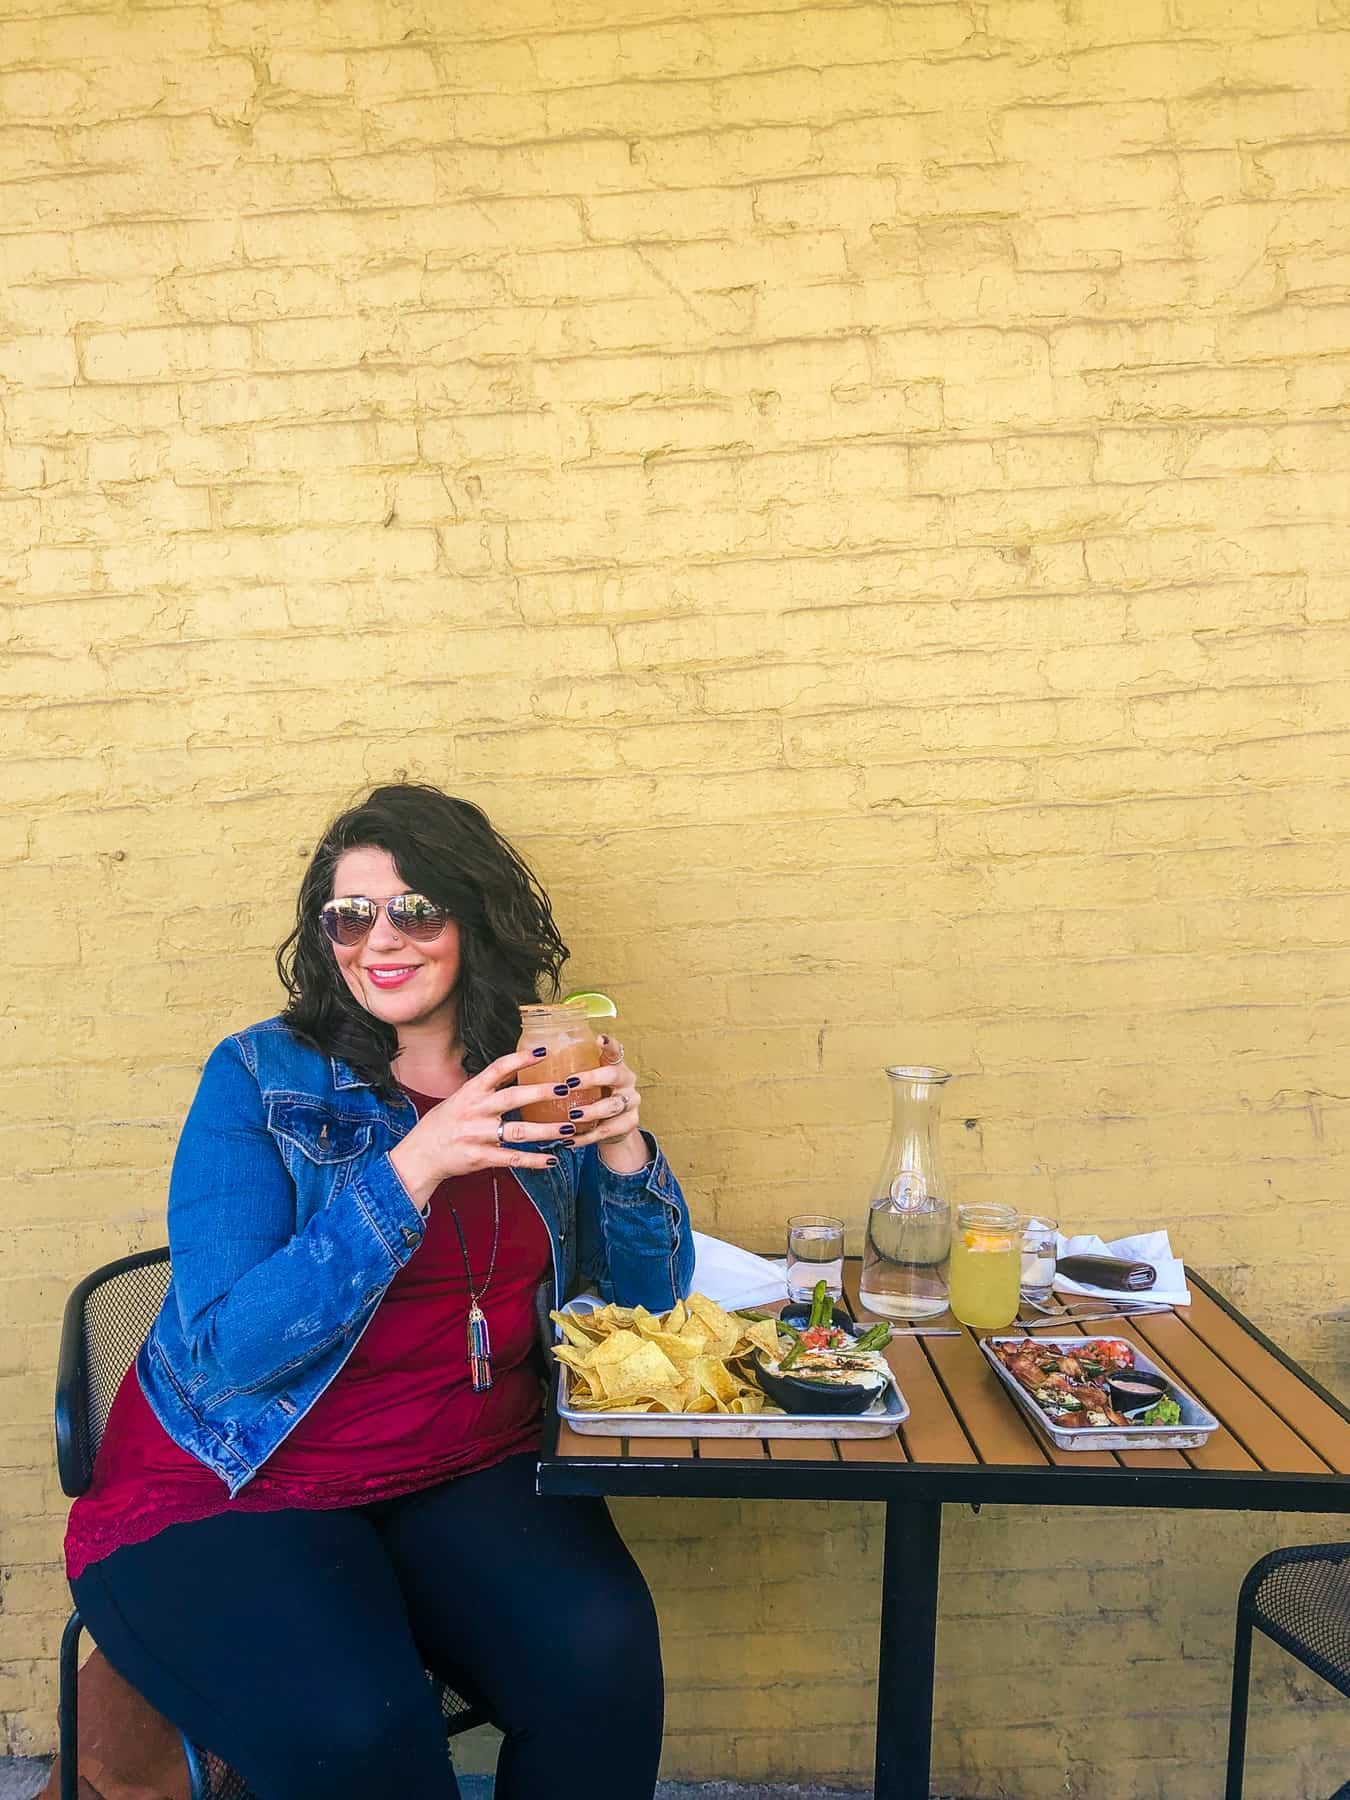 A brunette woman in sunglasses and a denim jacket sits eating outside next to a yellow brick wall.